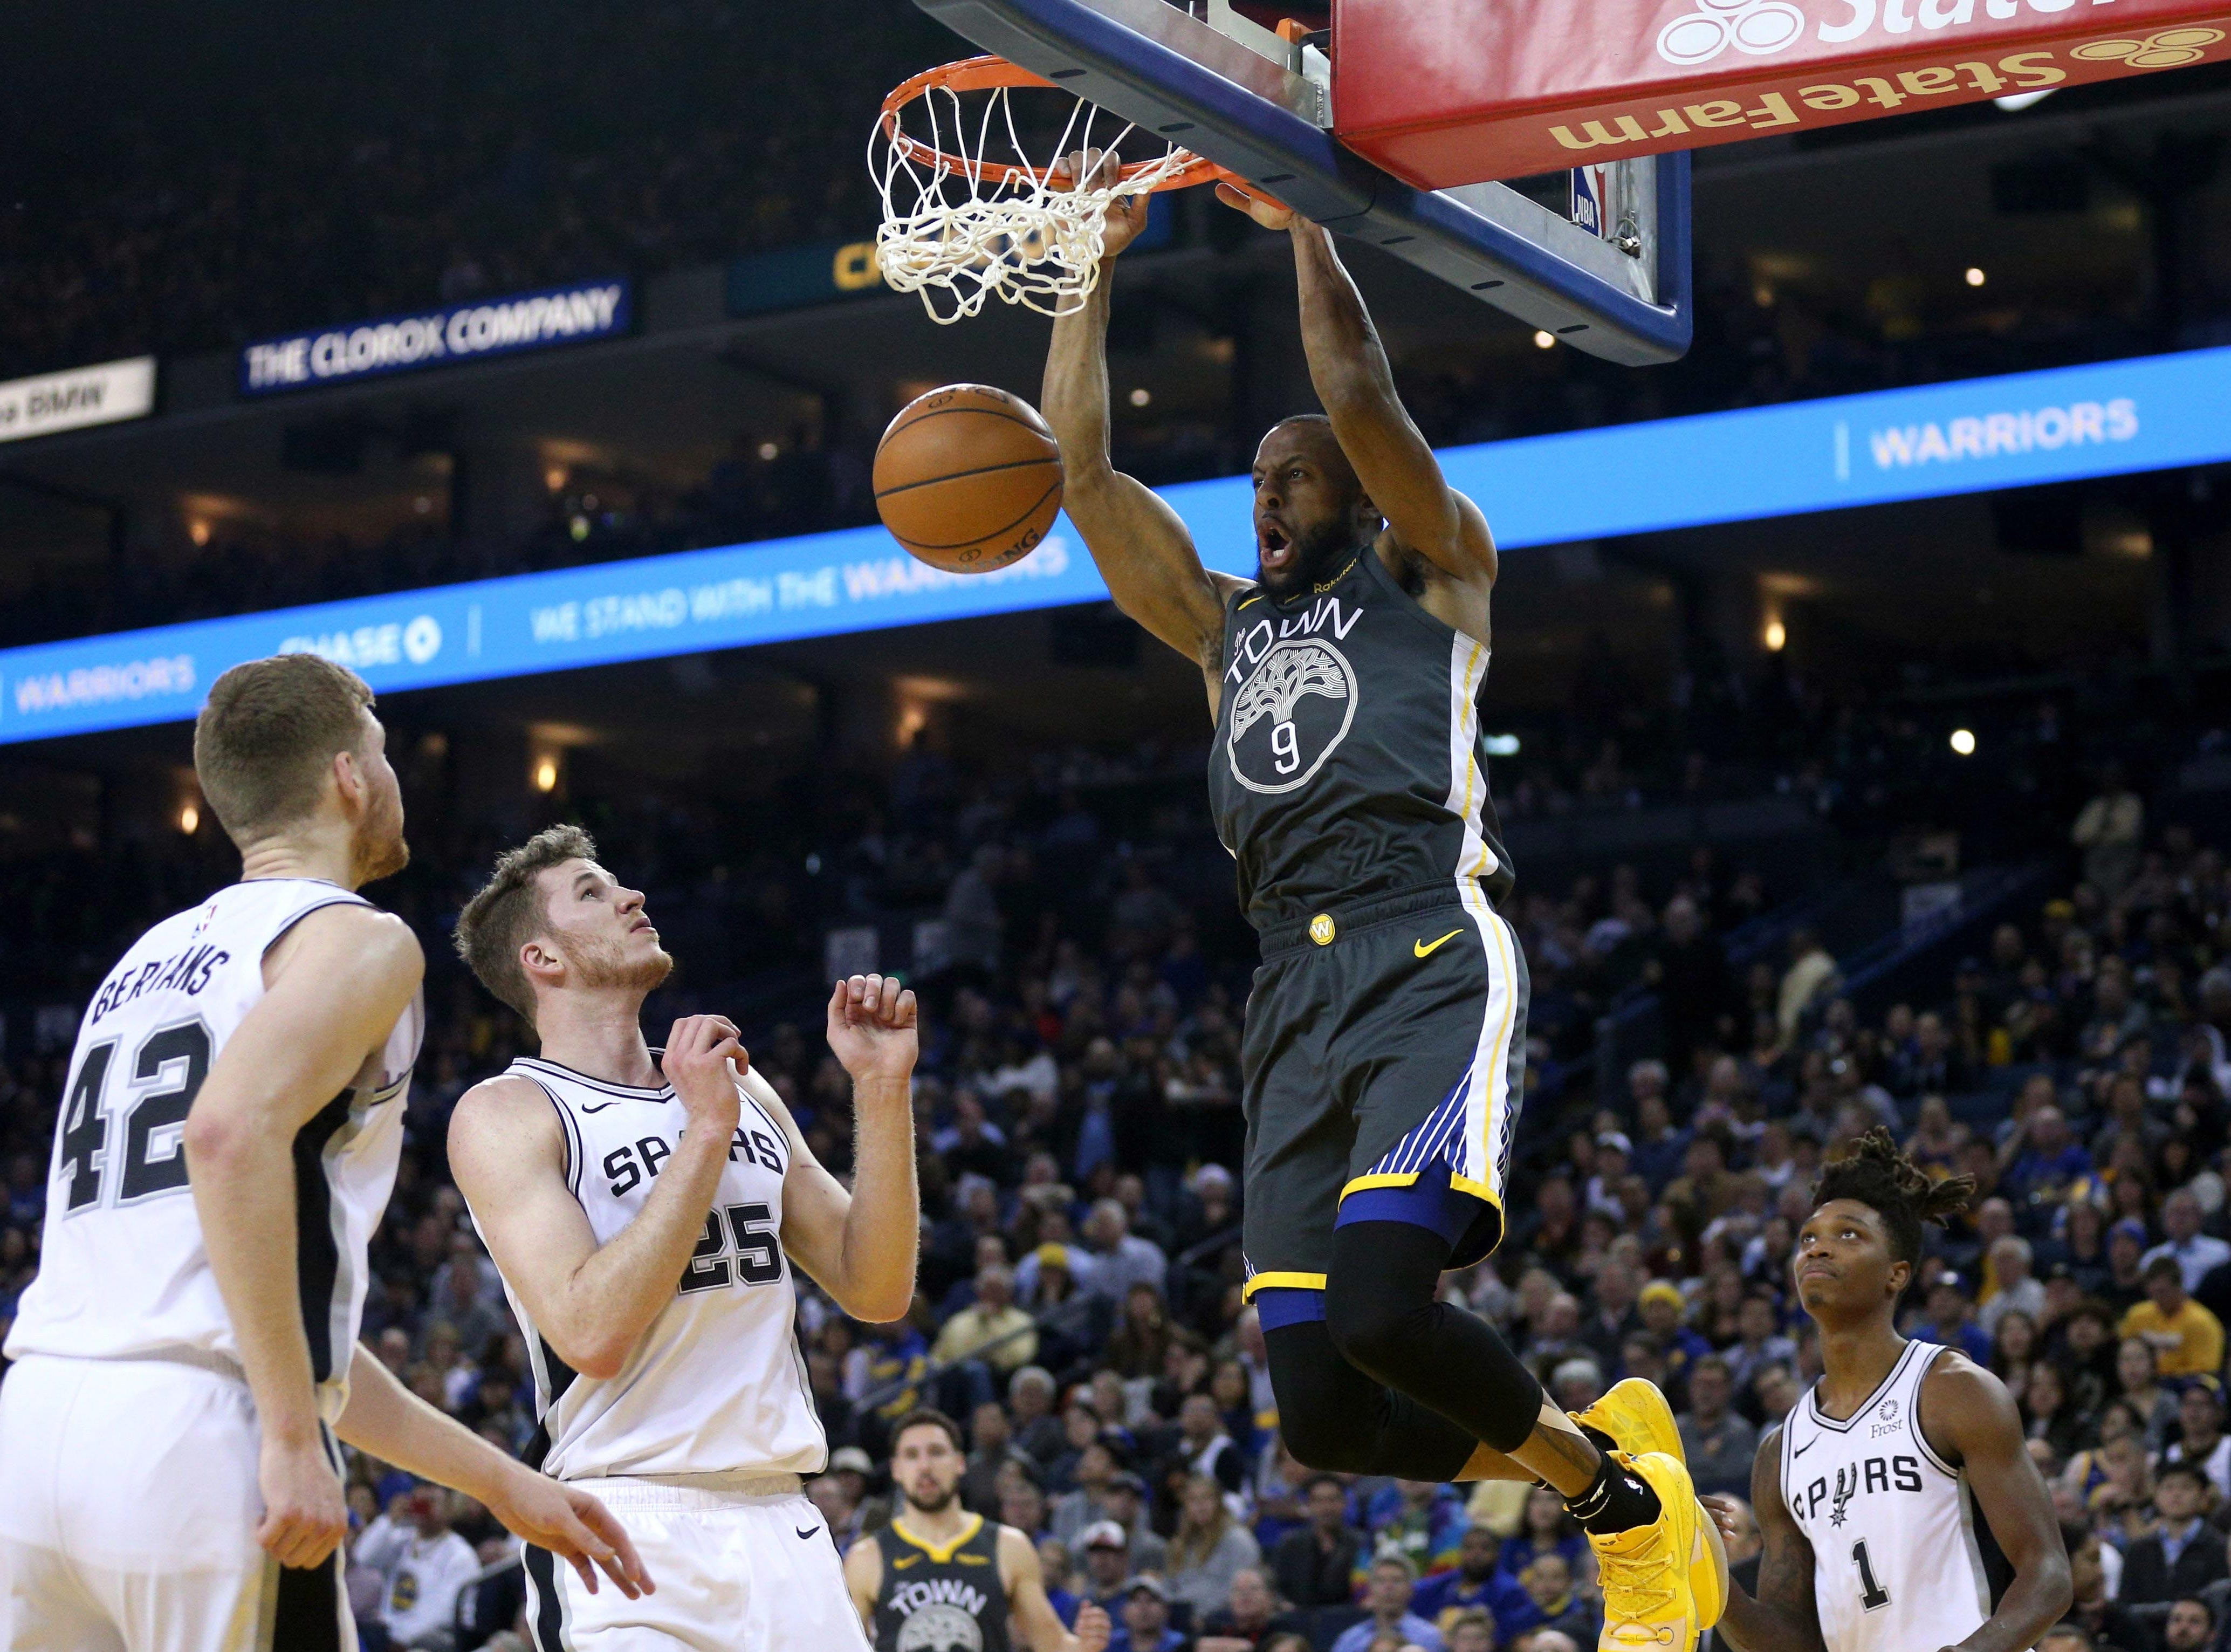 Feb. 6: Golden State Warriors guard Andre Iguodala dunks the ball against the San Antonio Spurs in the second quarter.